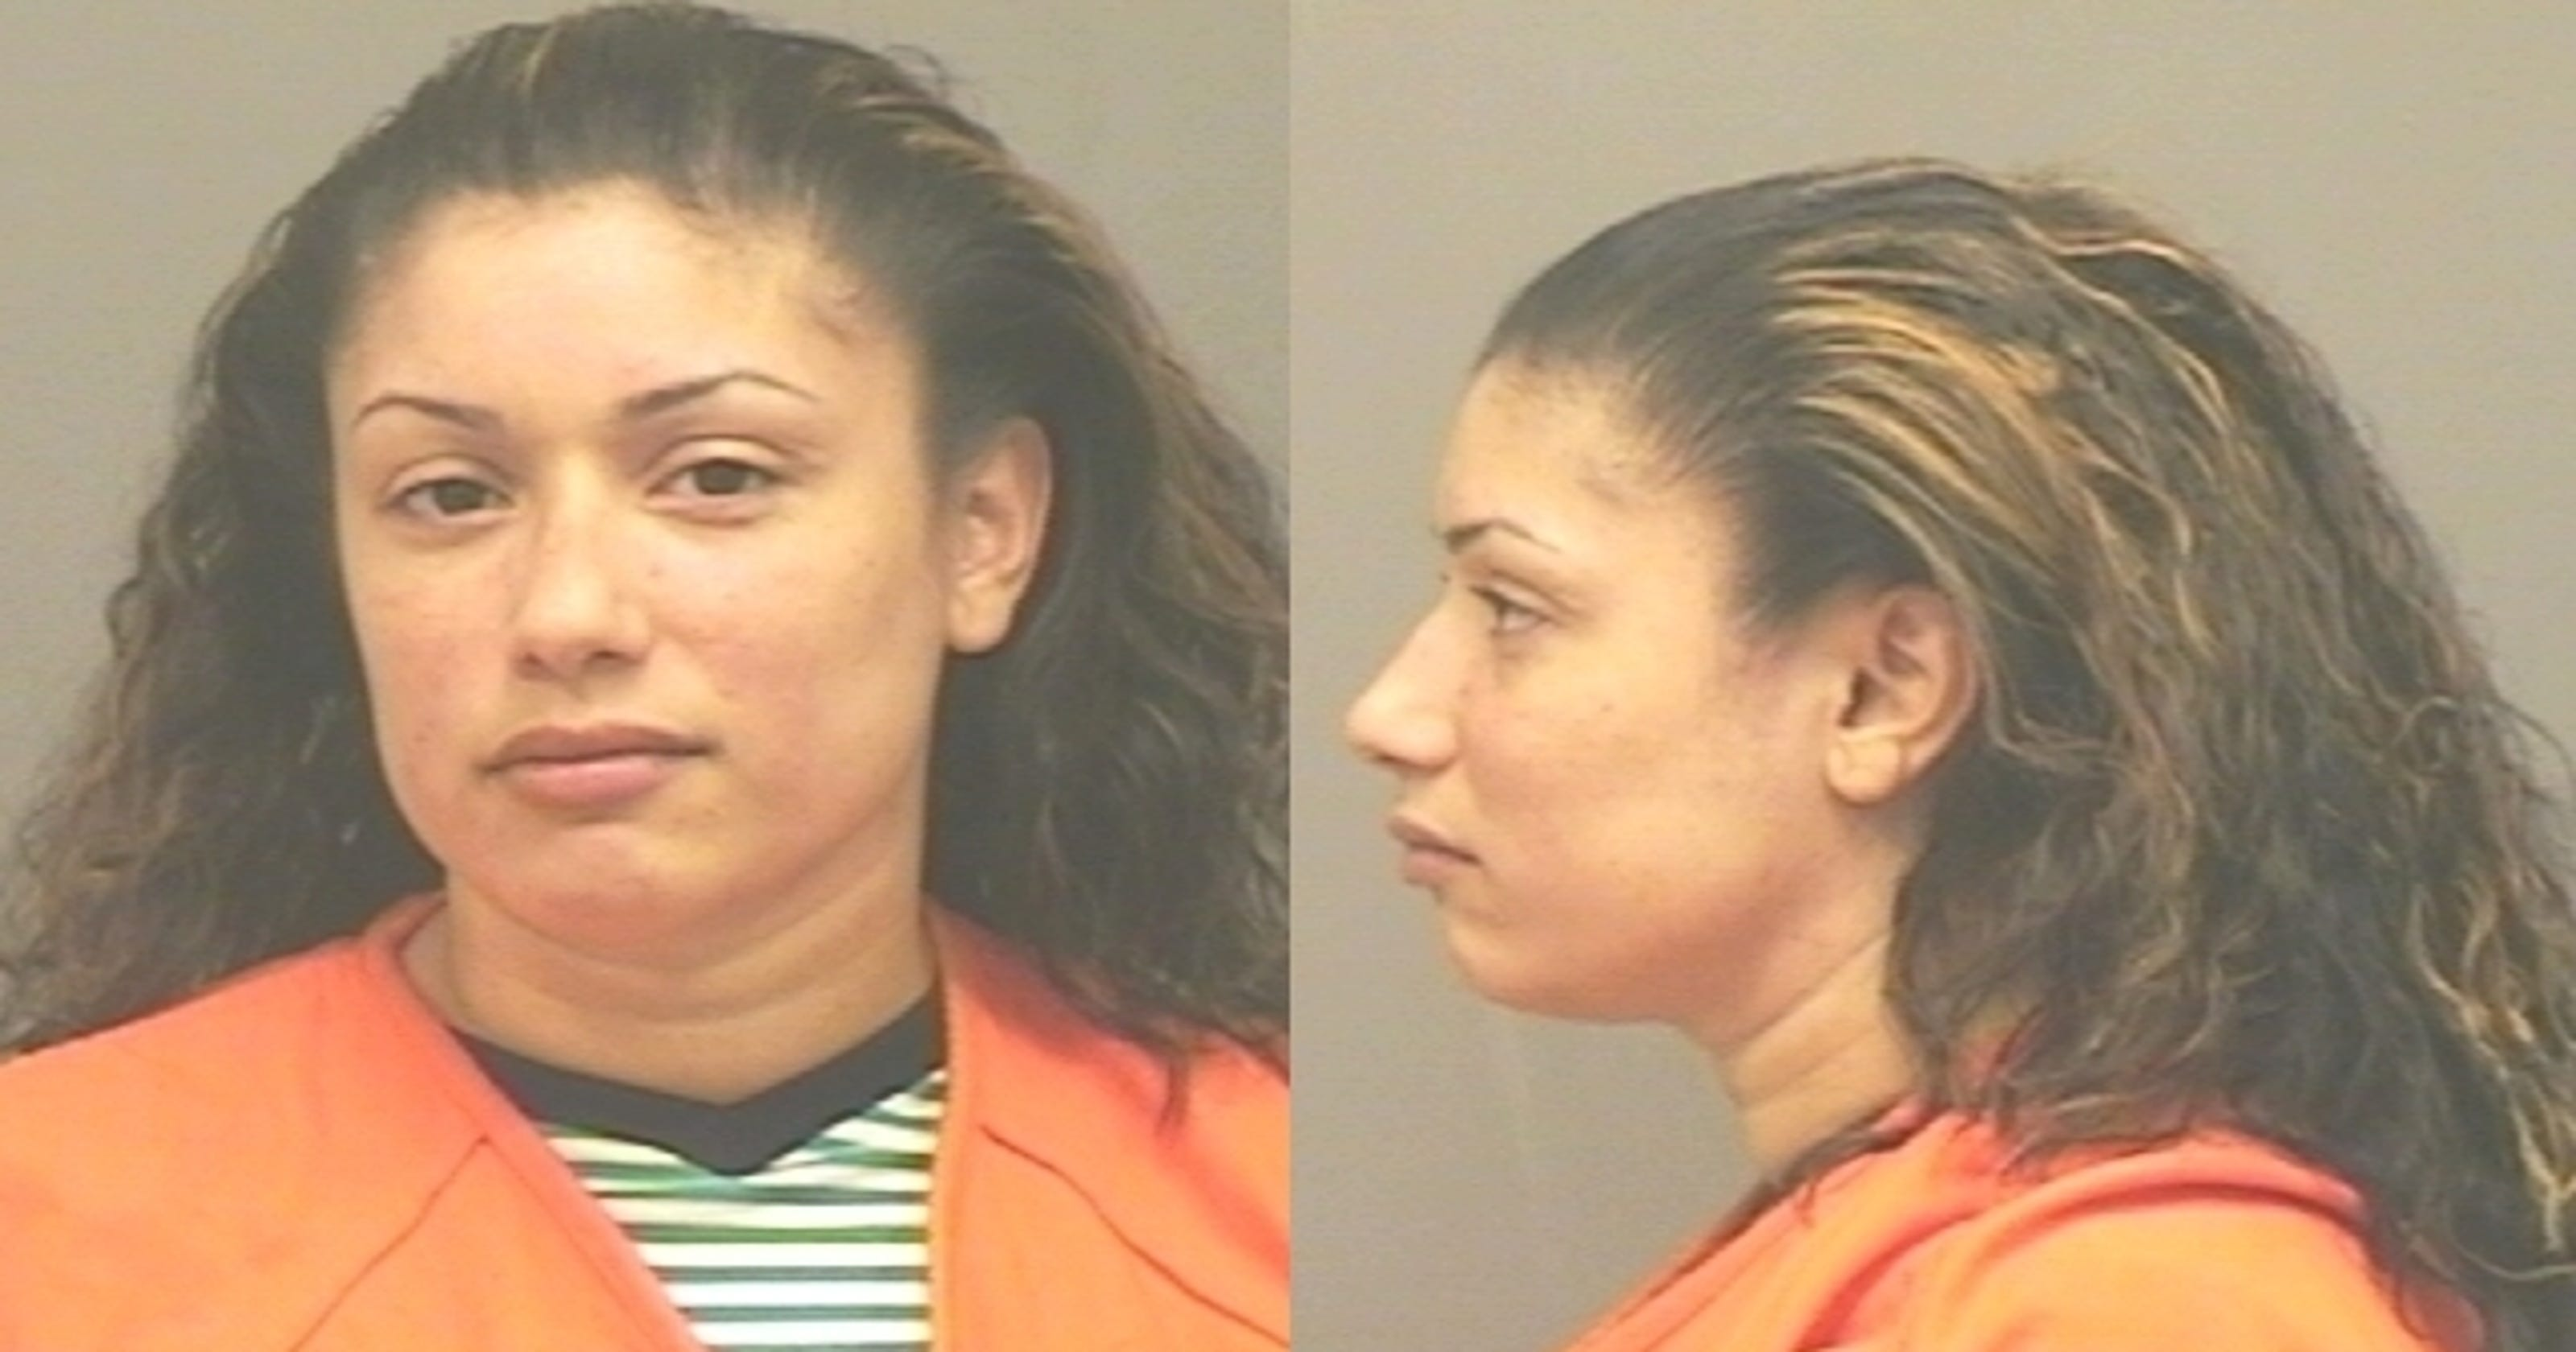 Warrant: woman hit brakes to get kids off car